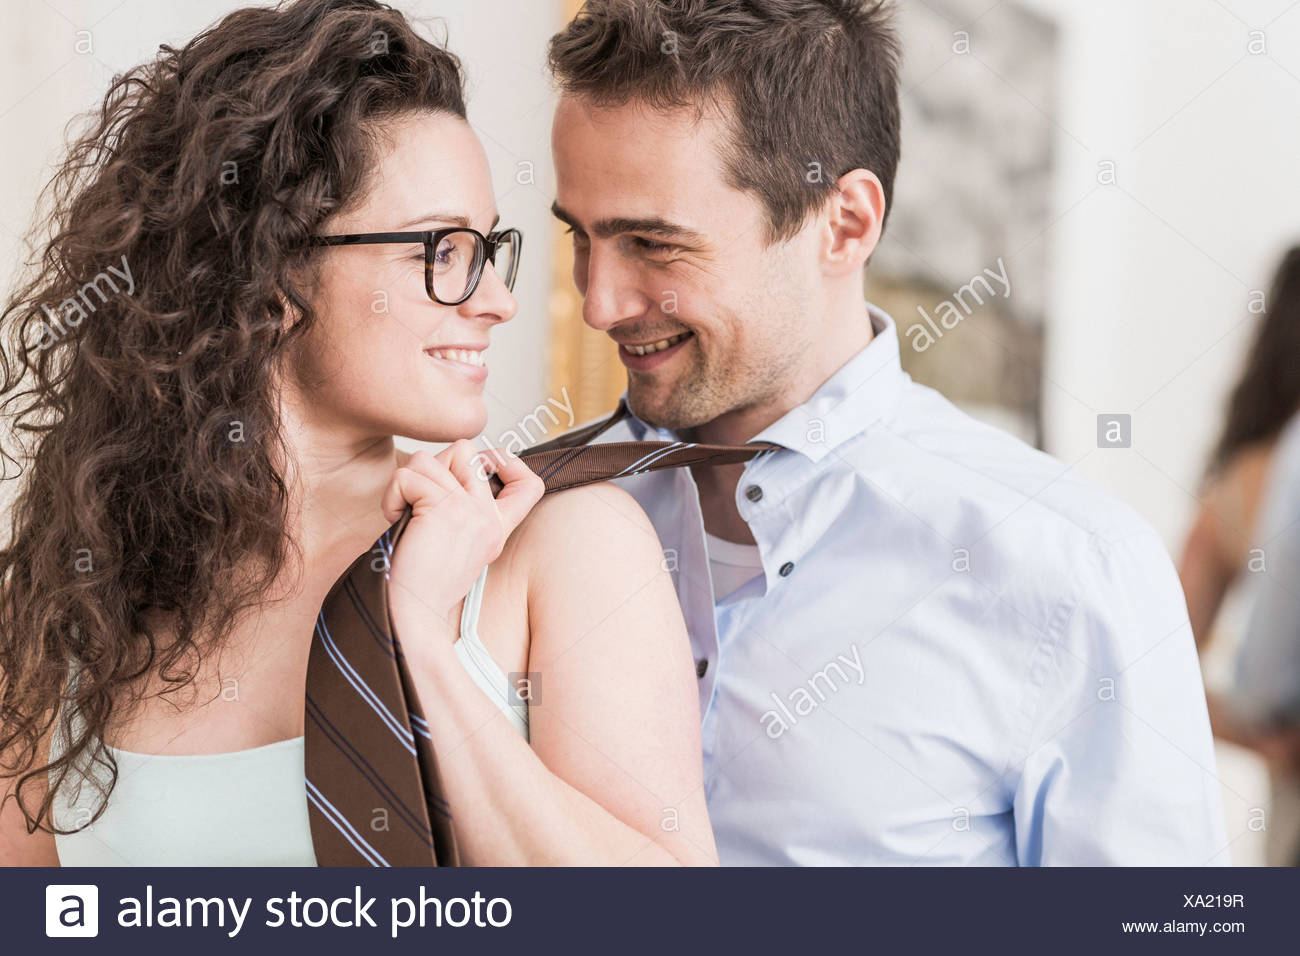 Mid adult woman pulling man's tie - Stock Image